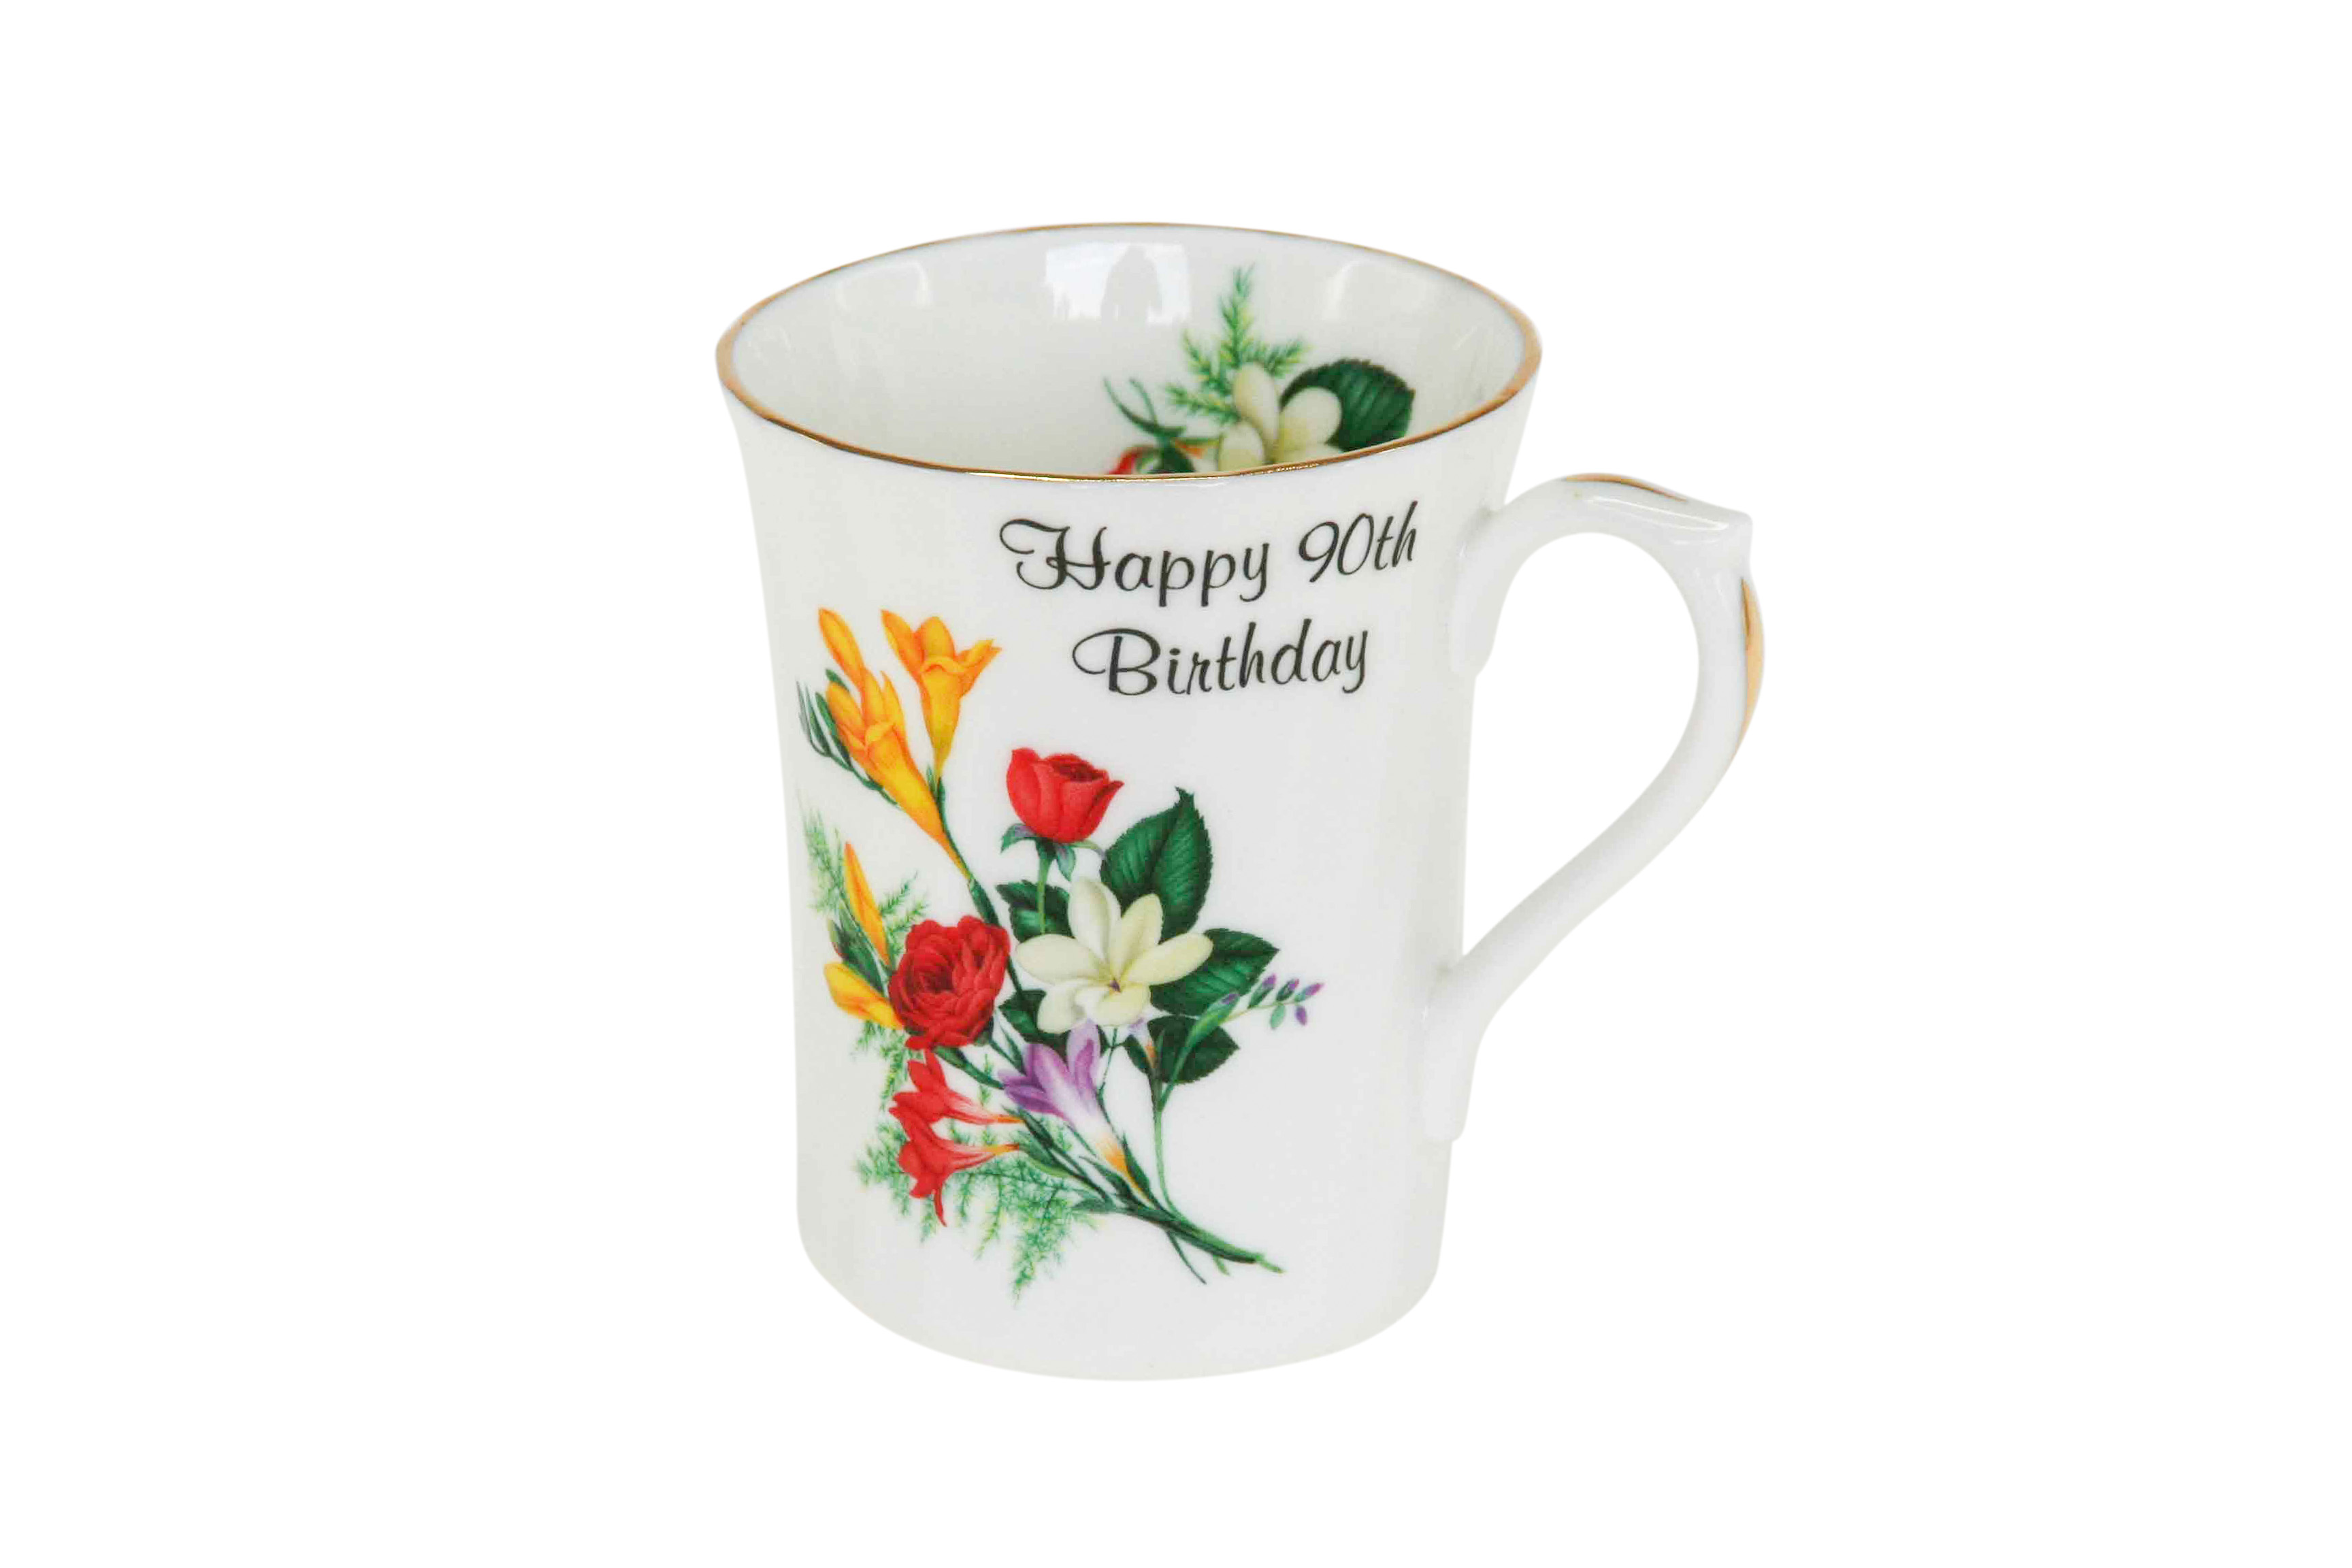 90th Birthday Swirl Mug